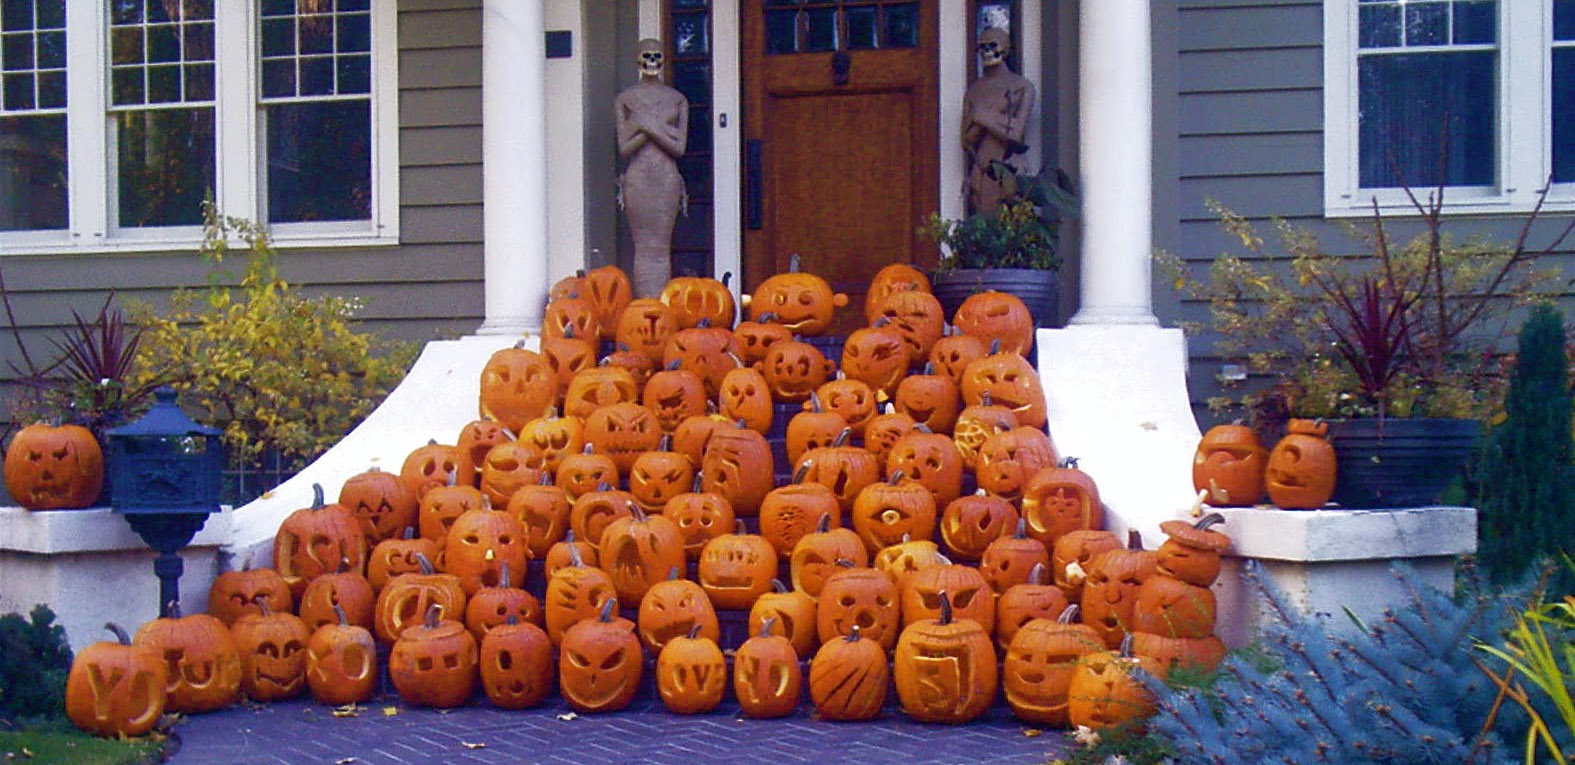 2020 Harrison Blvd Halloween Boise Idaho North End Halloween – The unofficial website of Boise's Historic